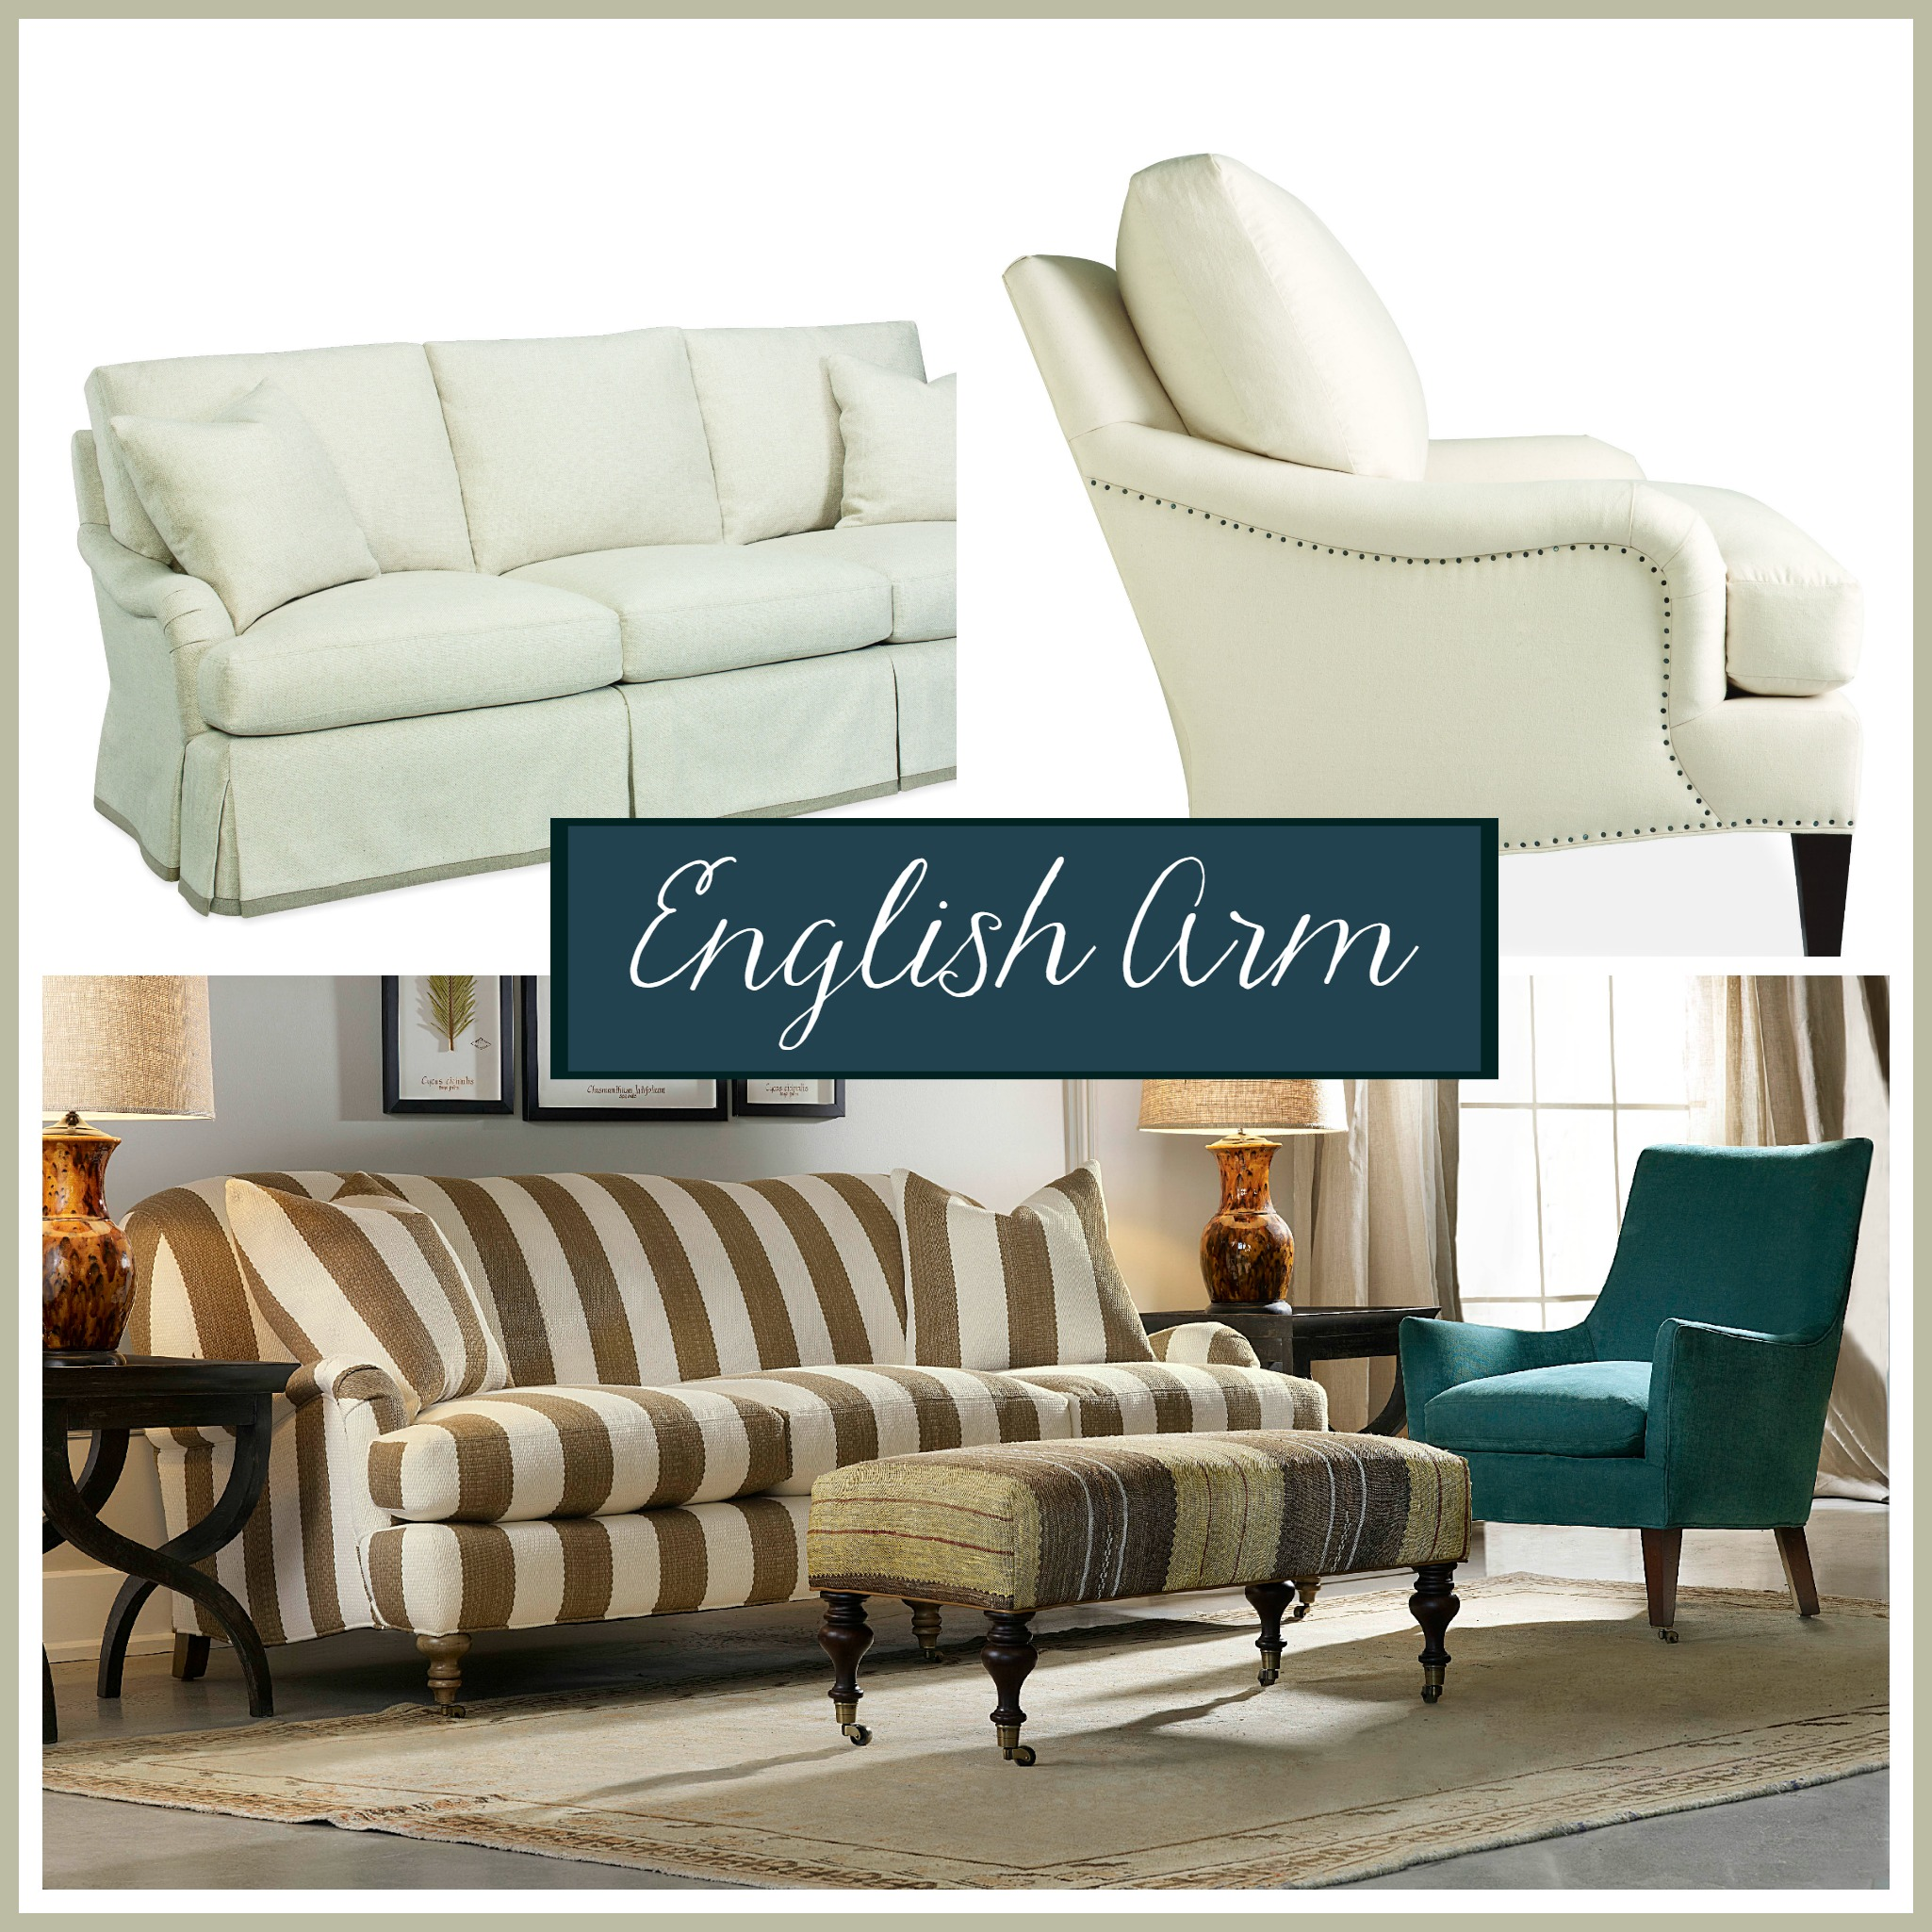 English Arm & Sofa Arm Styles: Picking the Perfect One | The Stated Home